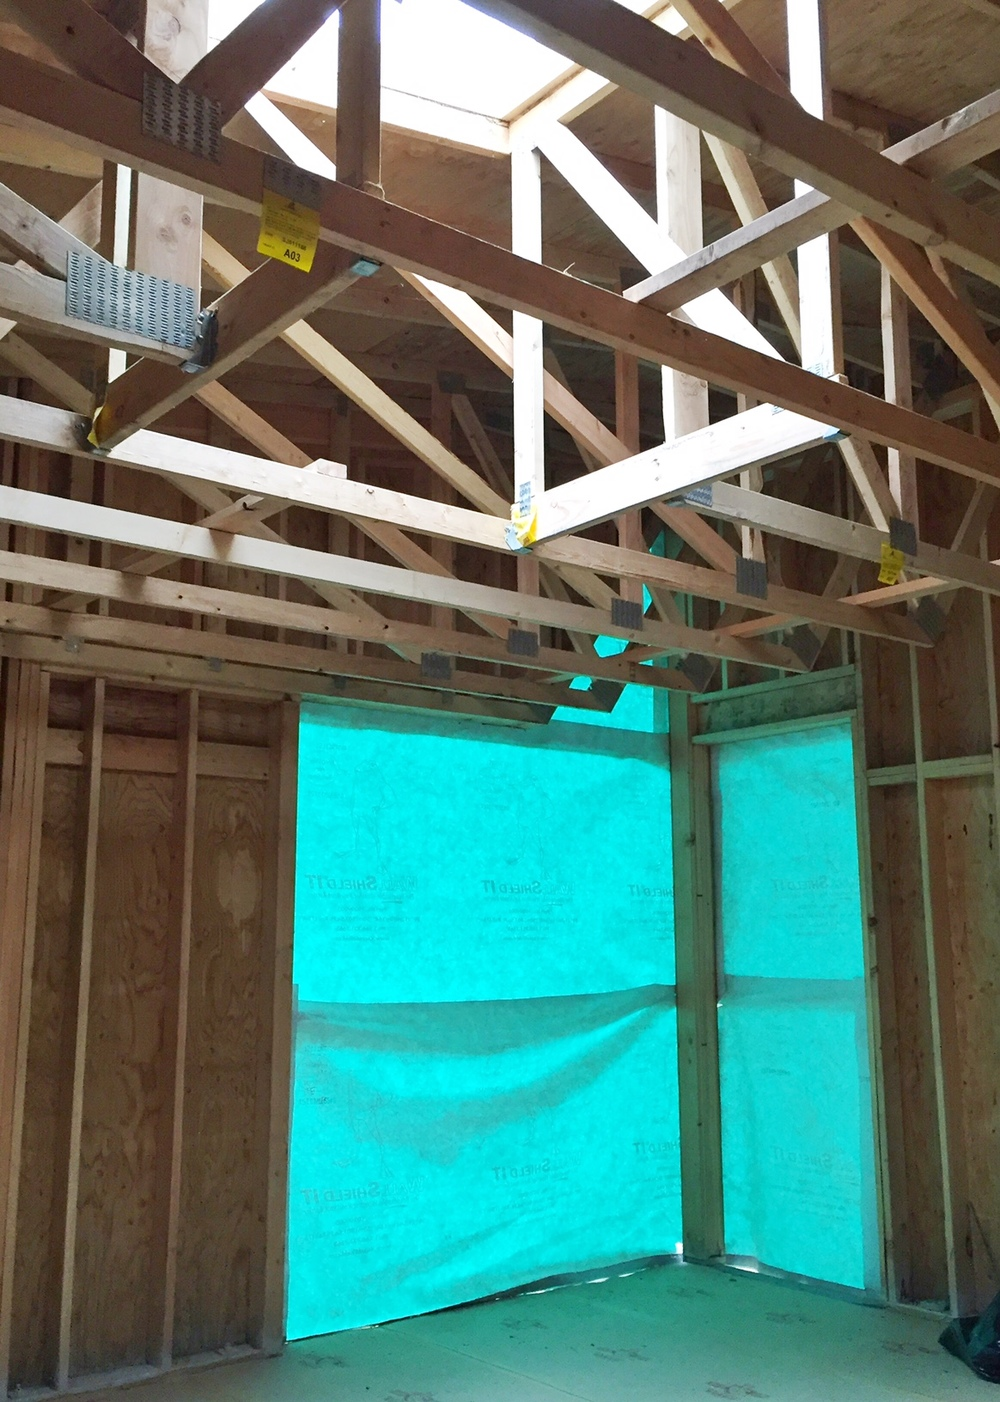 Northeast corner, which will be a large sliding glass door and window, letting in lots of natural light.